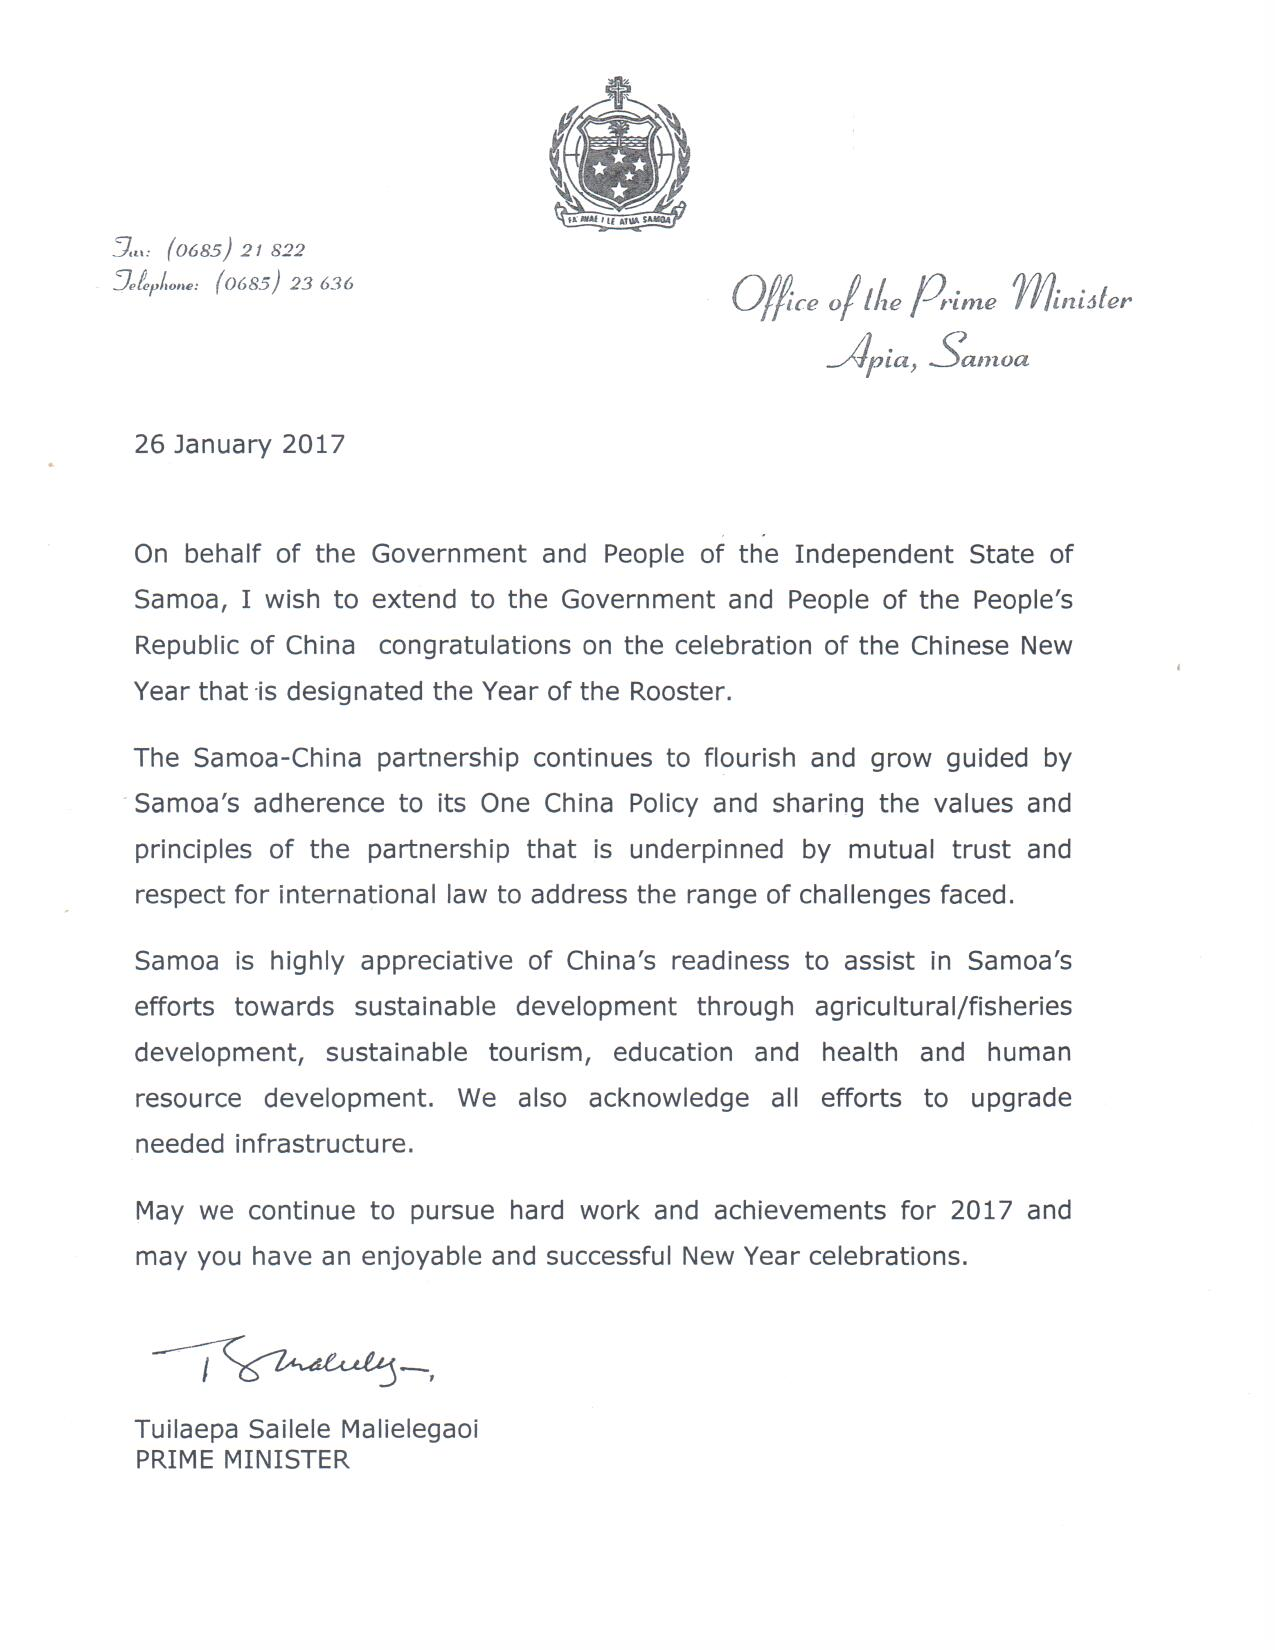 new year letter news page 2 government of samoa 23774 | PM Chinese New Year Message 2017